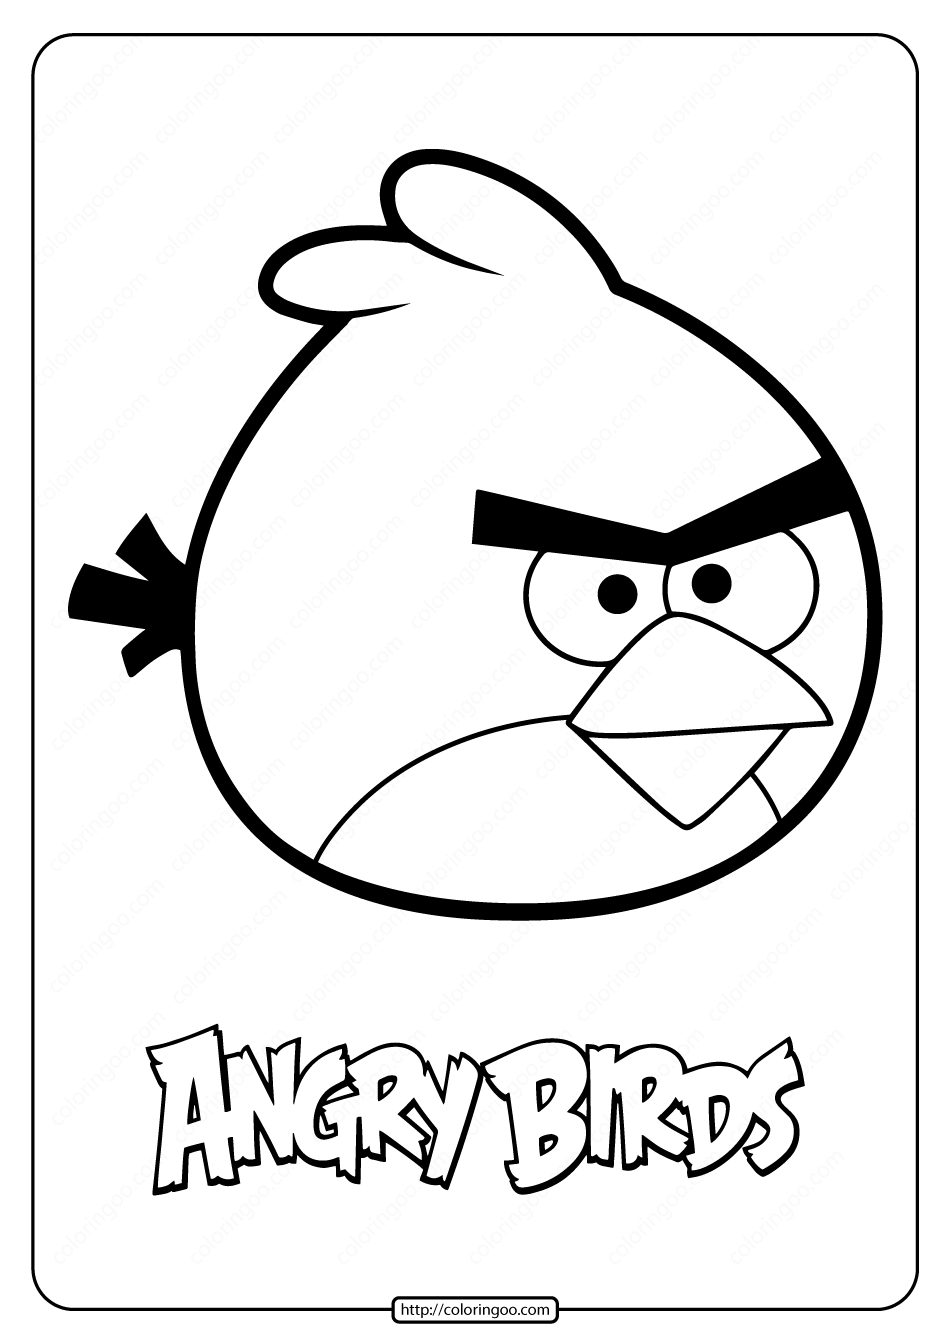 Printable Angry Birds Red Pdf Coloring Pages In 2020 Bird Coloring Pages Coloring Pages Free Printable Coloring Pages